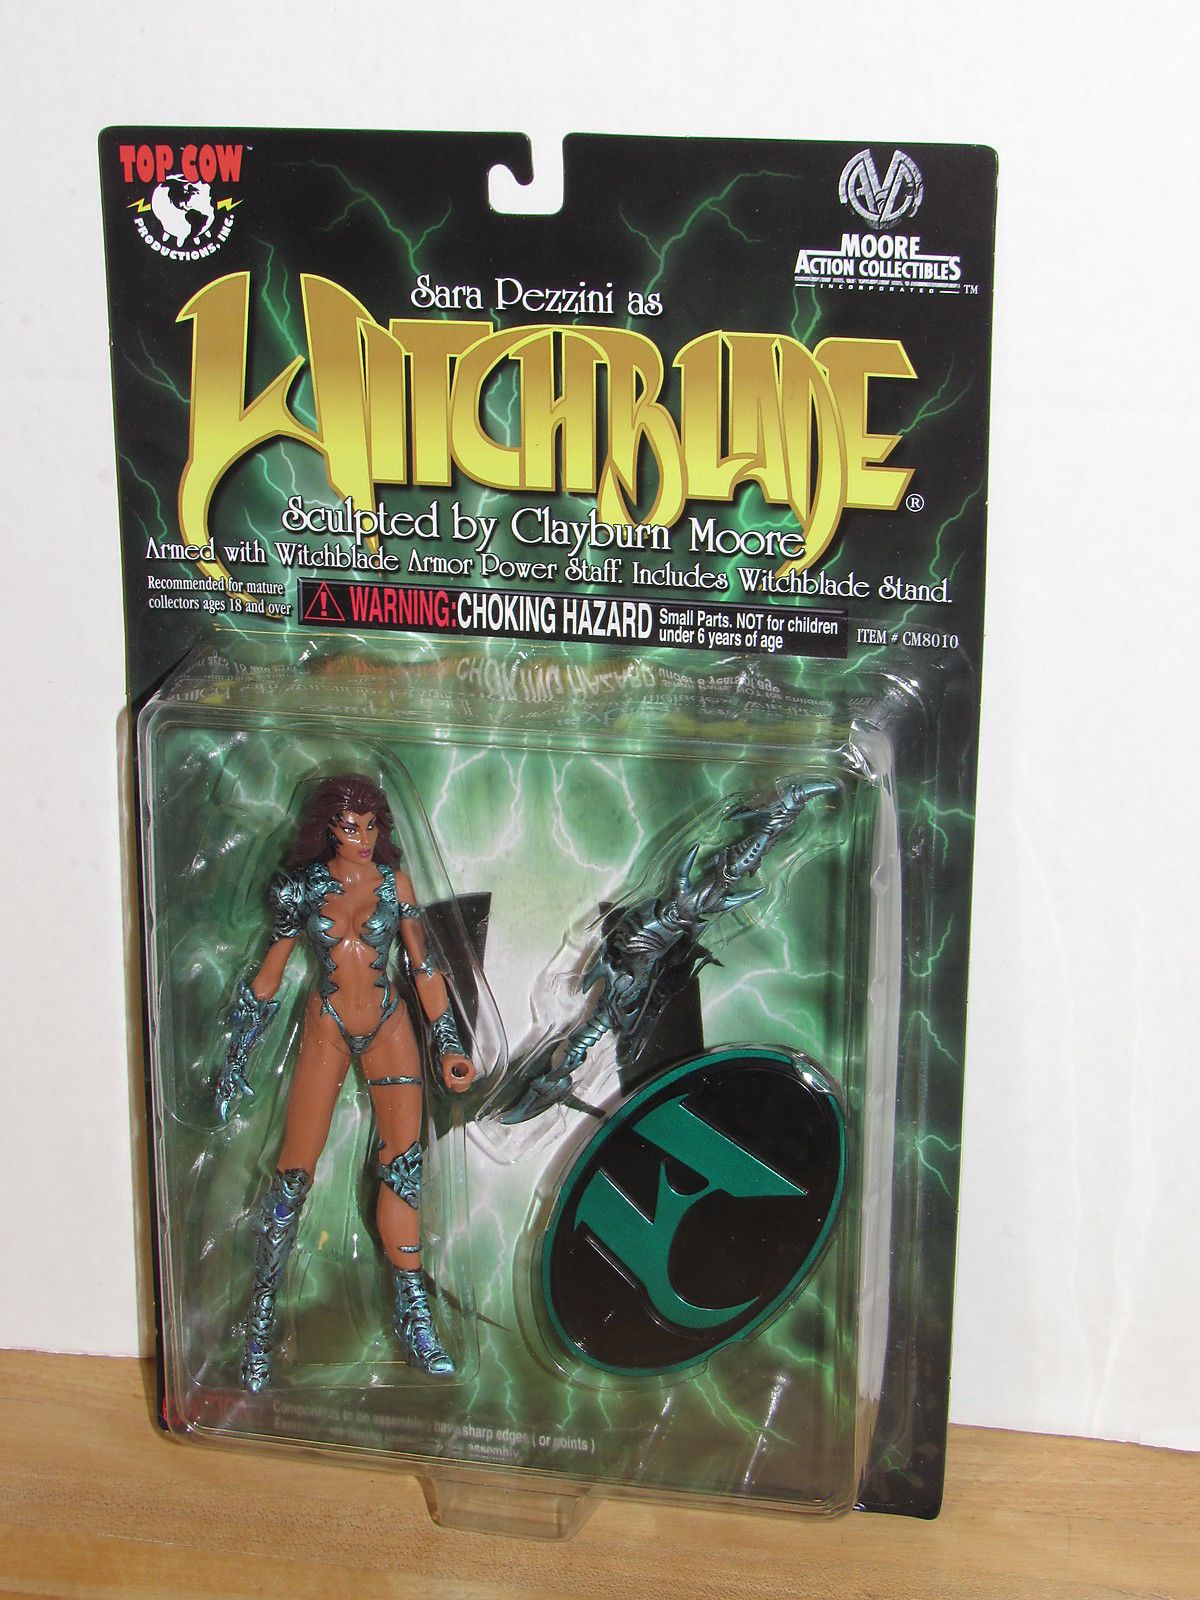 Moore Action Collectibles Top Cow Witchblade Sara Pezzini